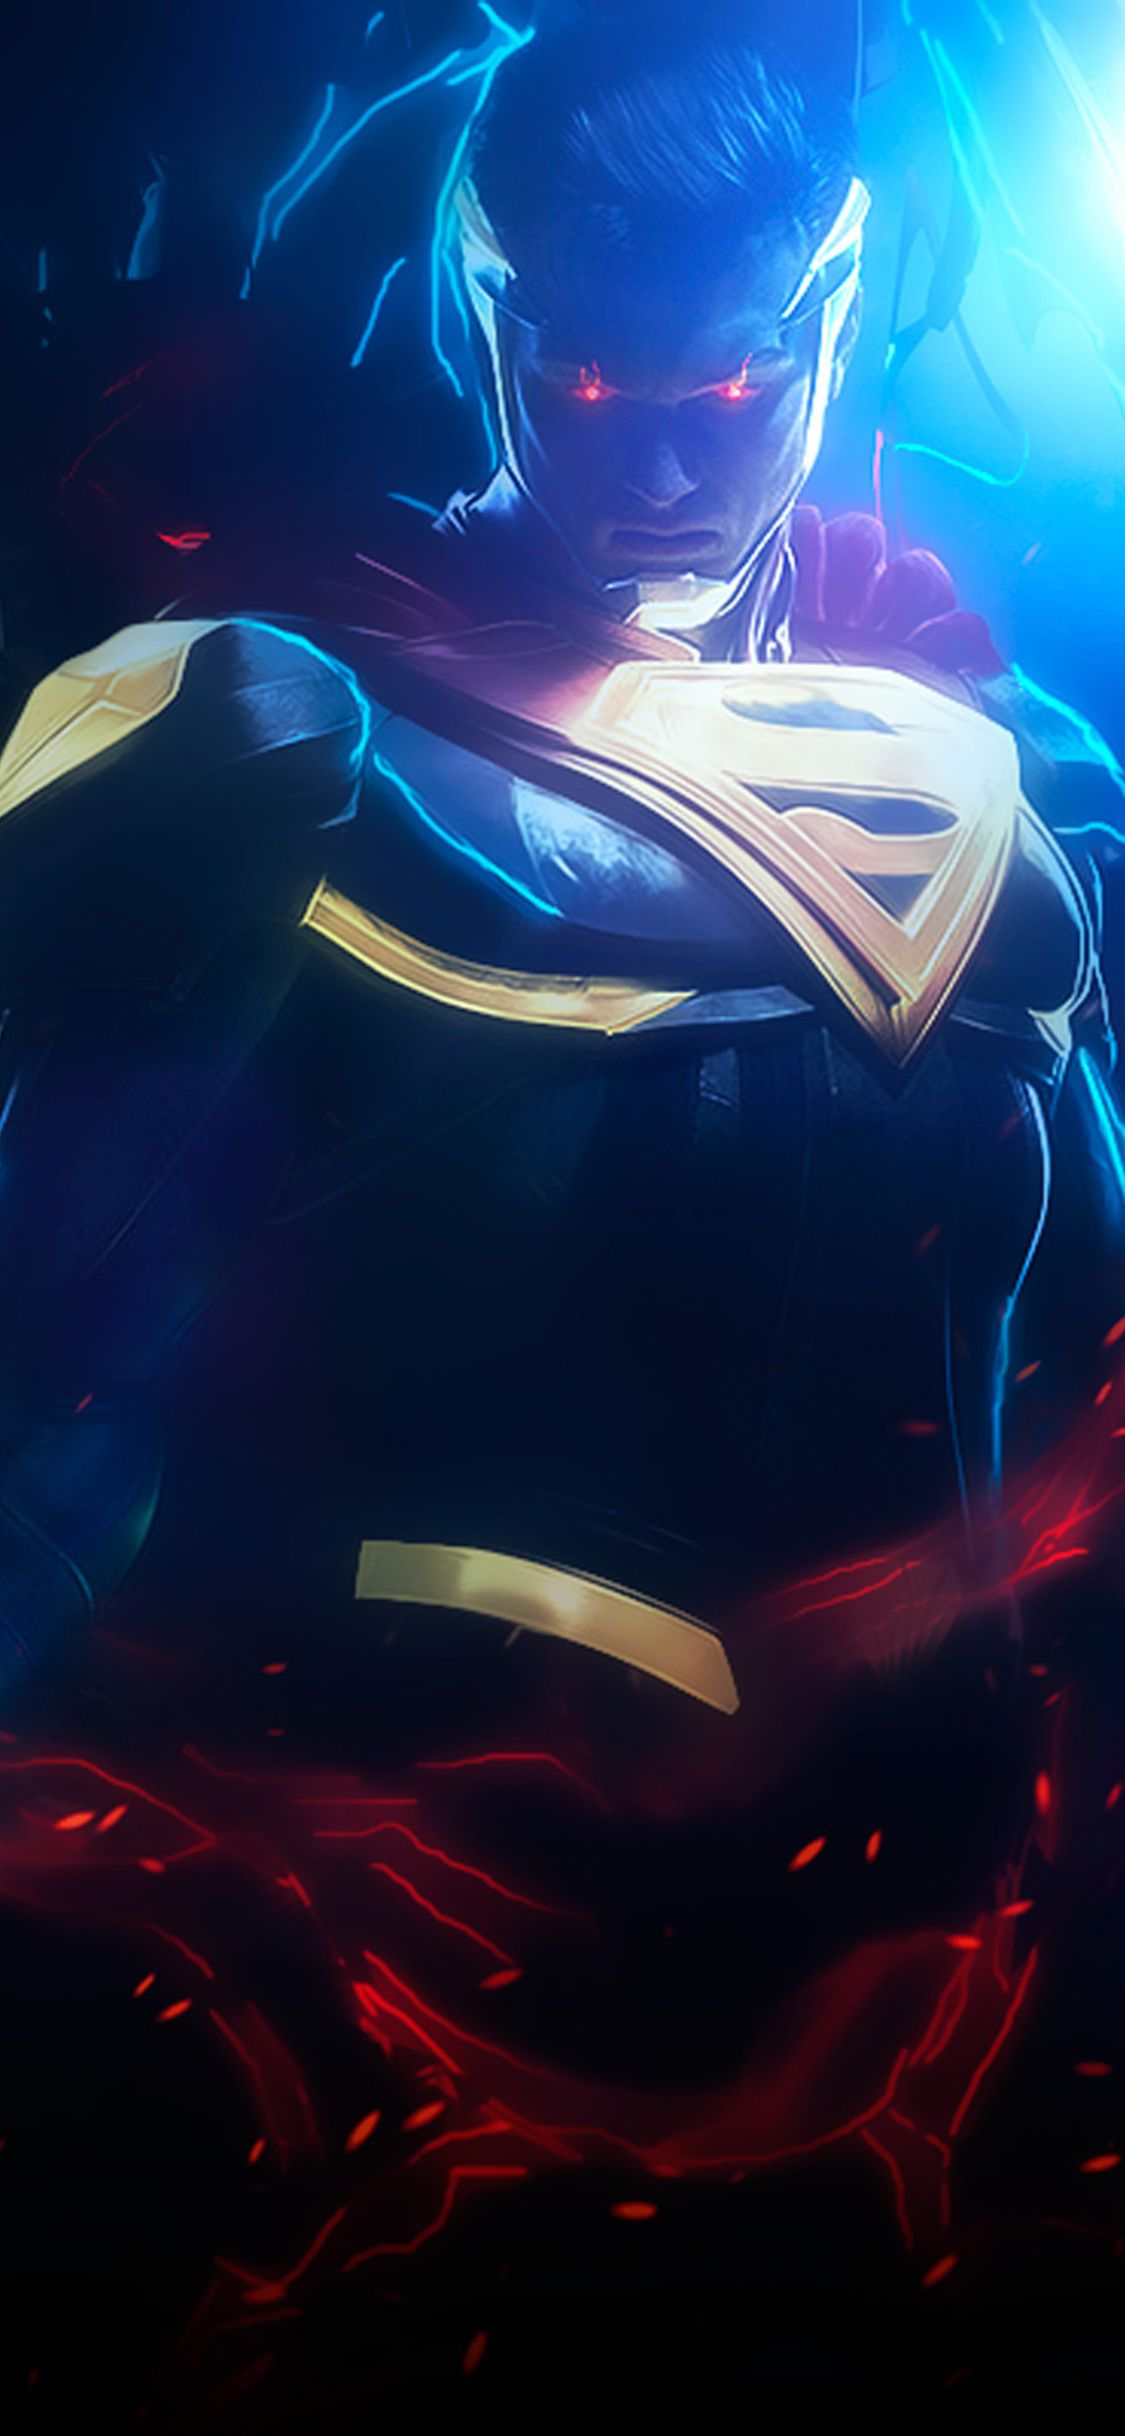 1125x2436 Superman Injustice 2 Art Iphone Xs Iphone 10 Iphone X Hd 4k Wallpapers Images Backgrounds Superman Wallpaper Superman Art Superman Wallpaper Logo